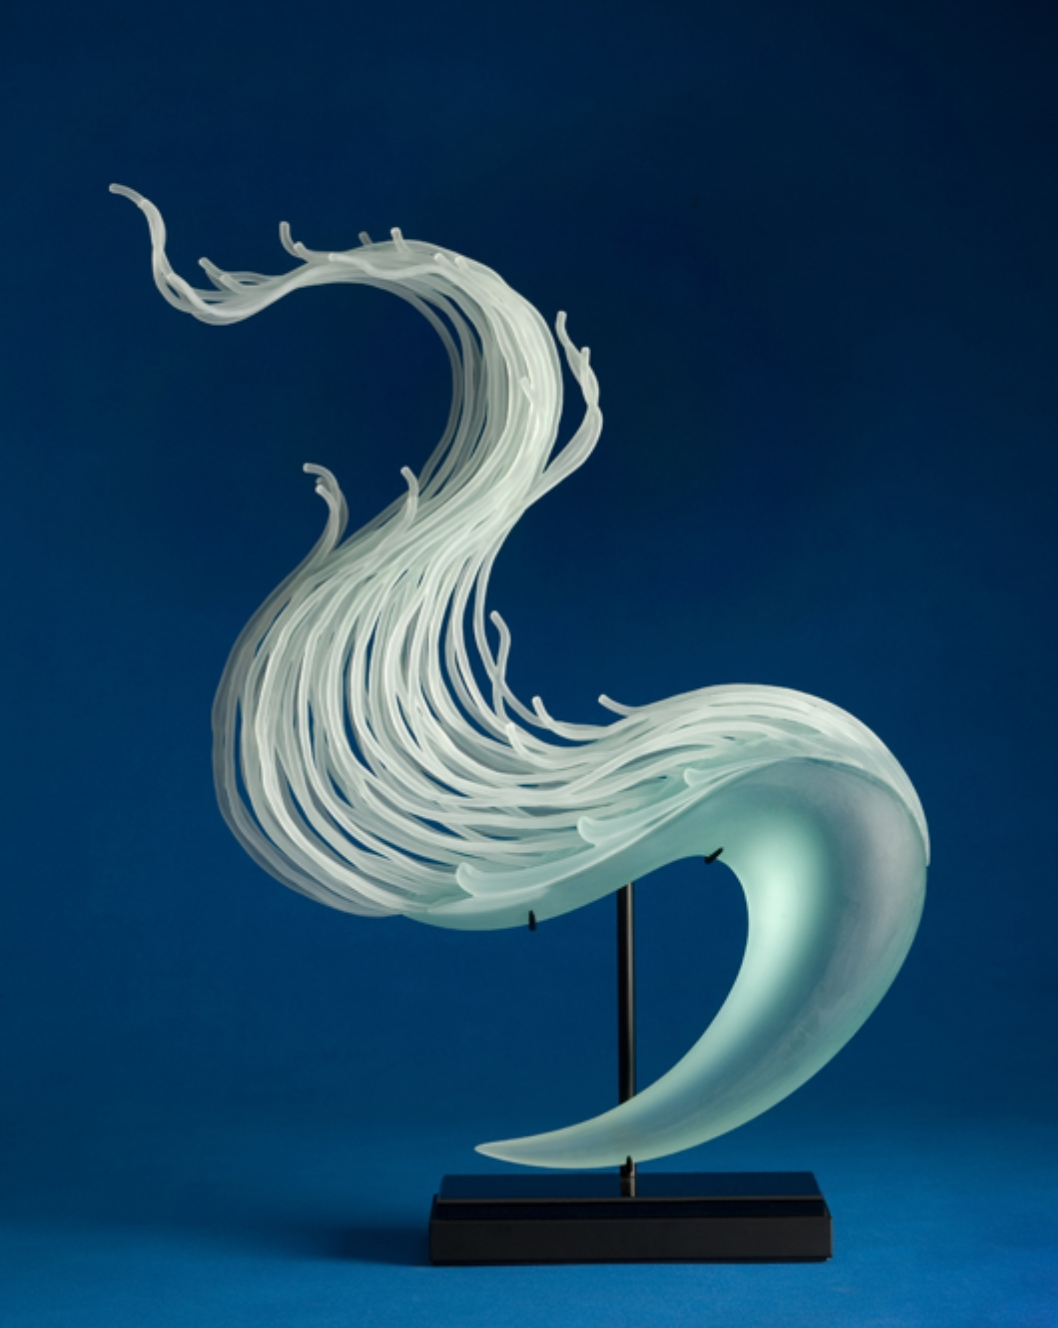 Carved and laminated glass sculpture by William LeQuier